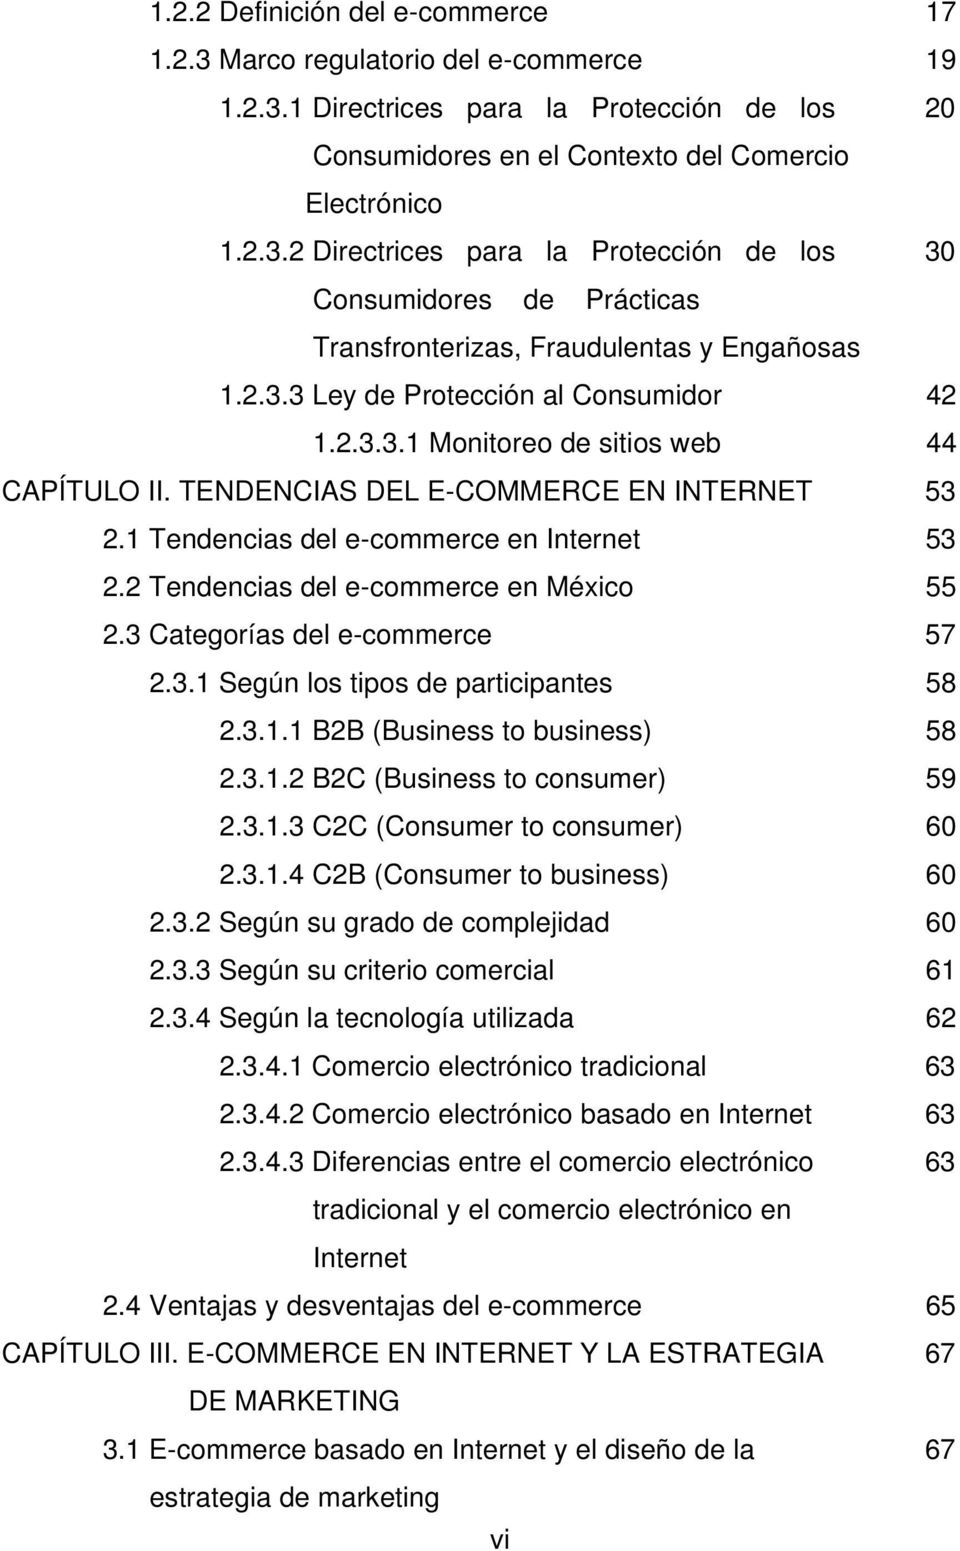 2 Tendencias del e-commerce en México 55 2.3 Categorías del e-commerce 57 2.3.1 Según los tipos de participantes 58 2.3.1.1 B2B (Business to business) 58 2.3.1.2 B2C (Business to consumer) 59 2.3.1.3 C2C (Consumer to consumer) 60 2.